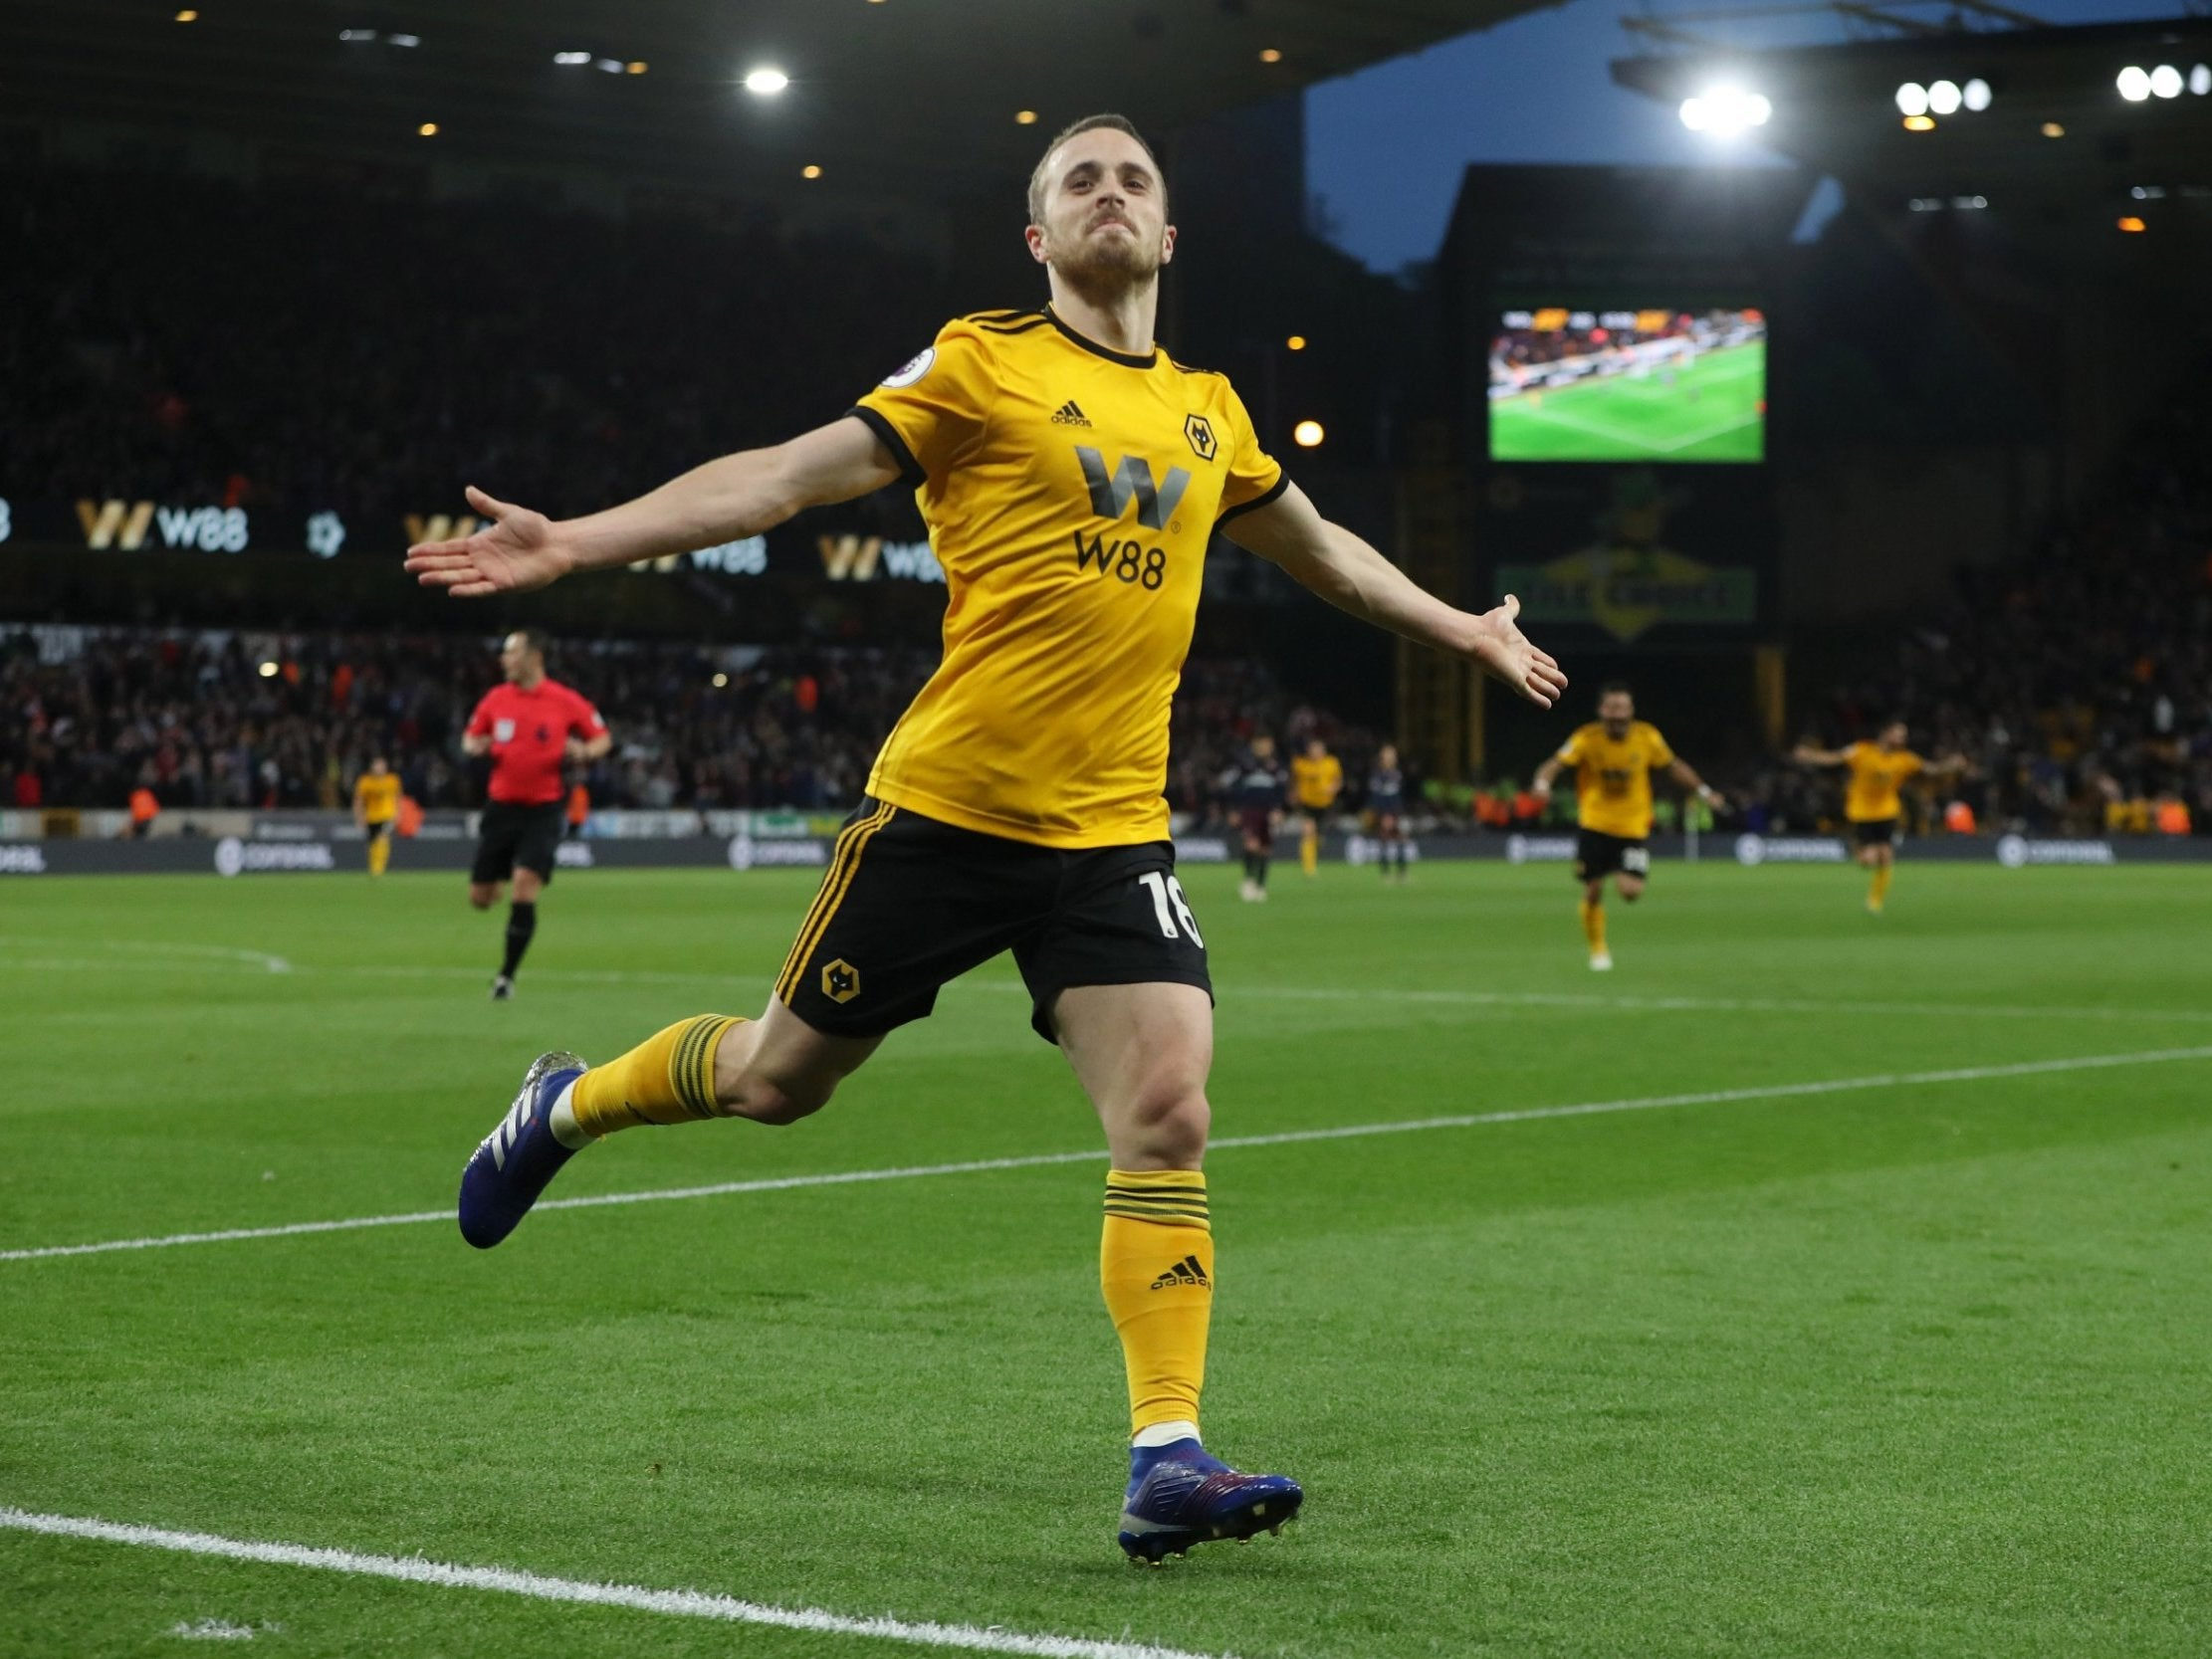 Diogo Jota aiming to learn from Portugal teammate Cristiano Ronaldo as Wolves look to build on last season